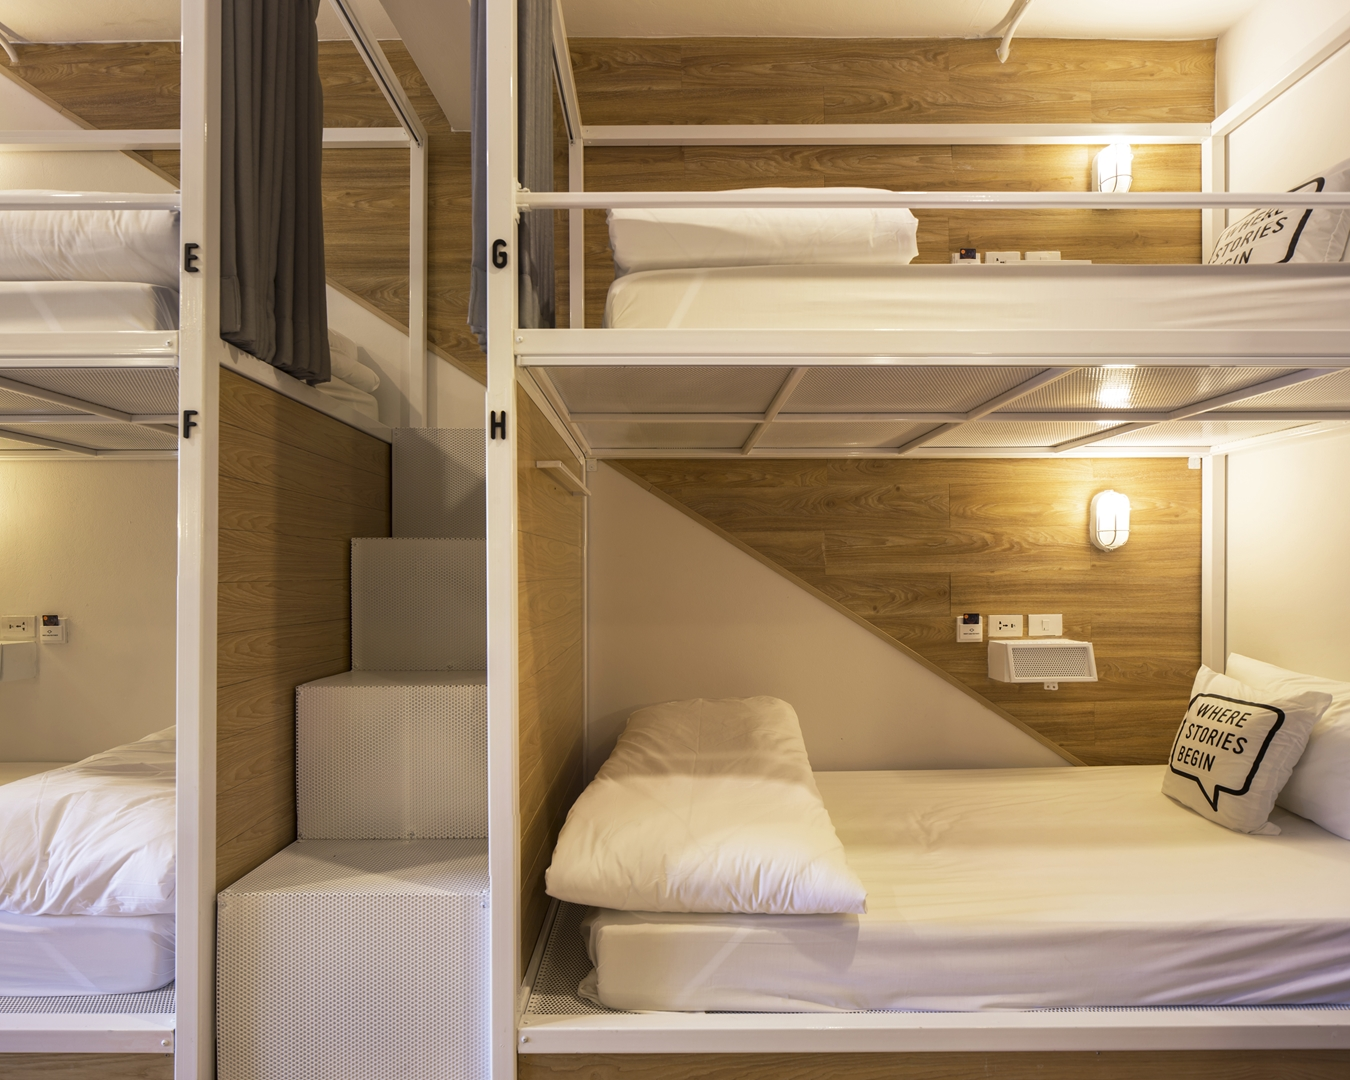 BED_ONE_BLOCK_43 (Copy)